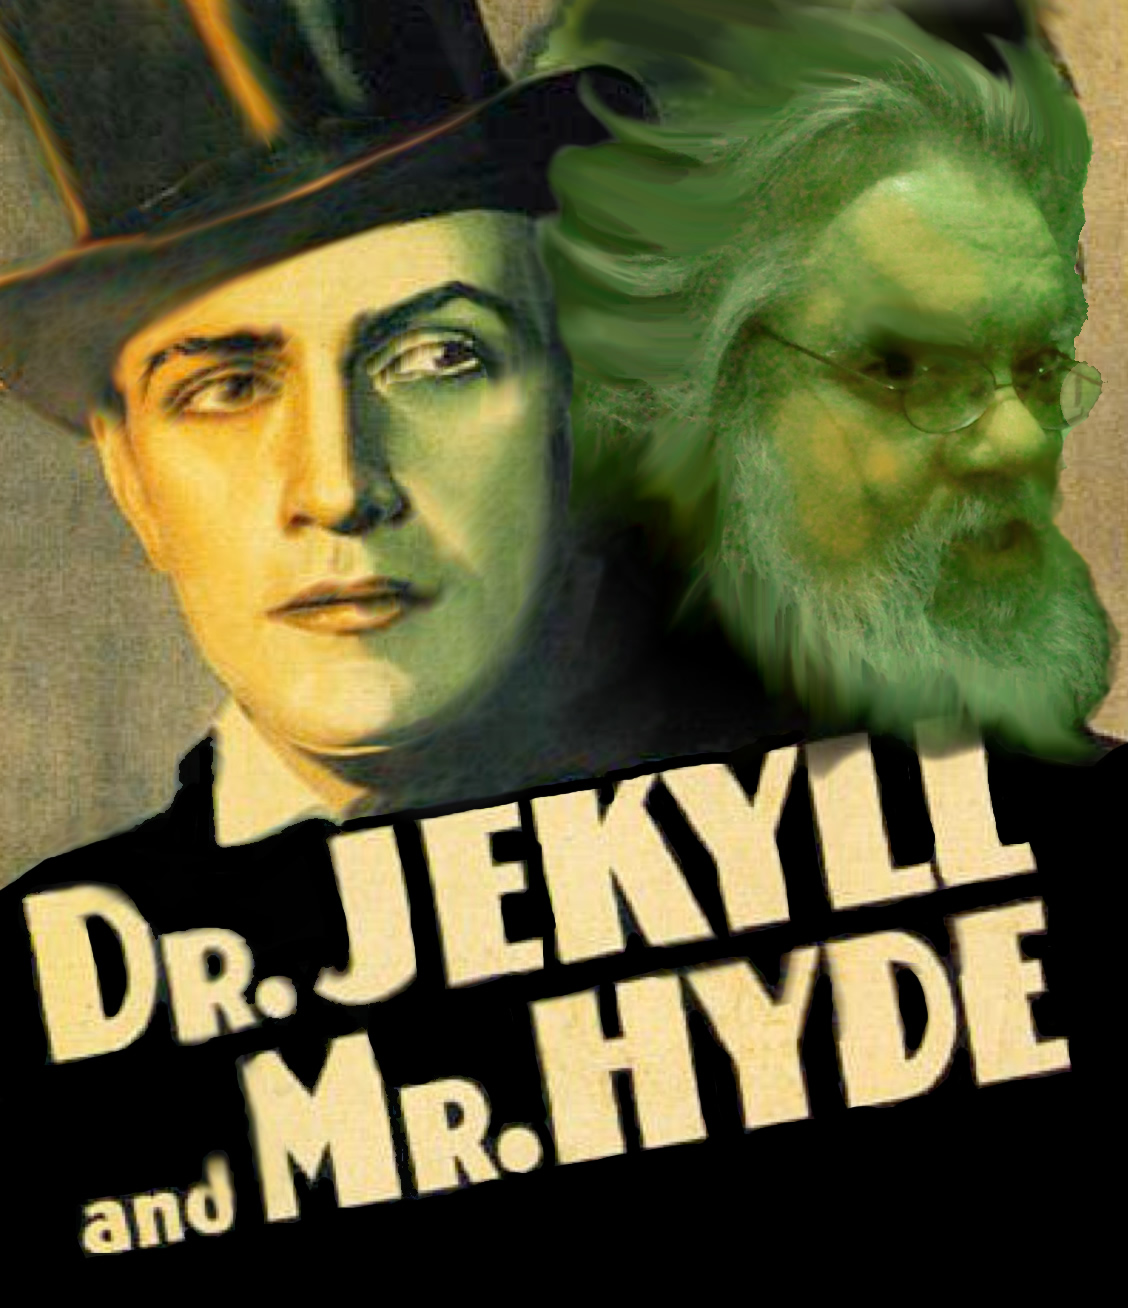 Dr Jekyll and Dr. Price